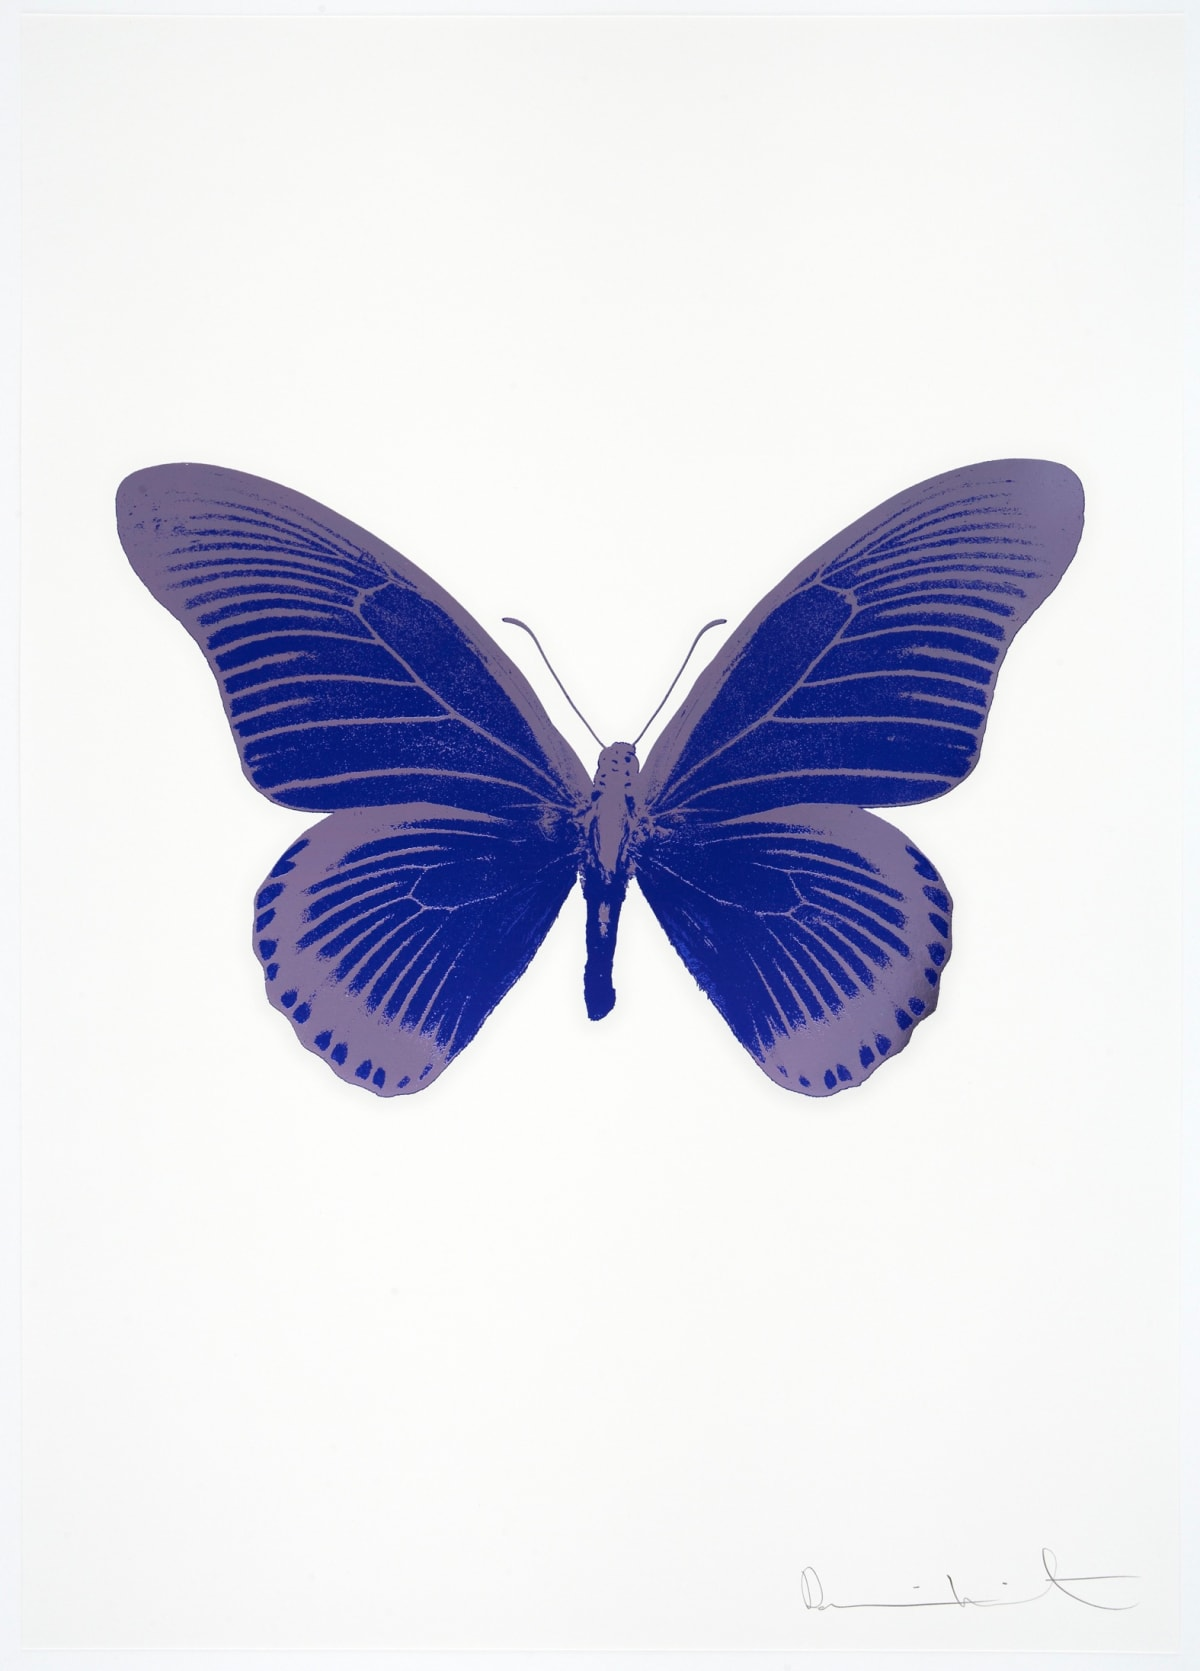 Damien Hirst The Souls IV - Westminster Blue/Aquarius Damien Hirst butterfly foil print for sale Damien Hirst print for sale , 2010 3 colour foil block on 300gsm Arches 88 archival paper. Signed and numbered. Published by Paul Stolper and Other Criteria 72 x 51cm OC7985 /1418-8 Edition of 15